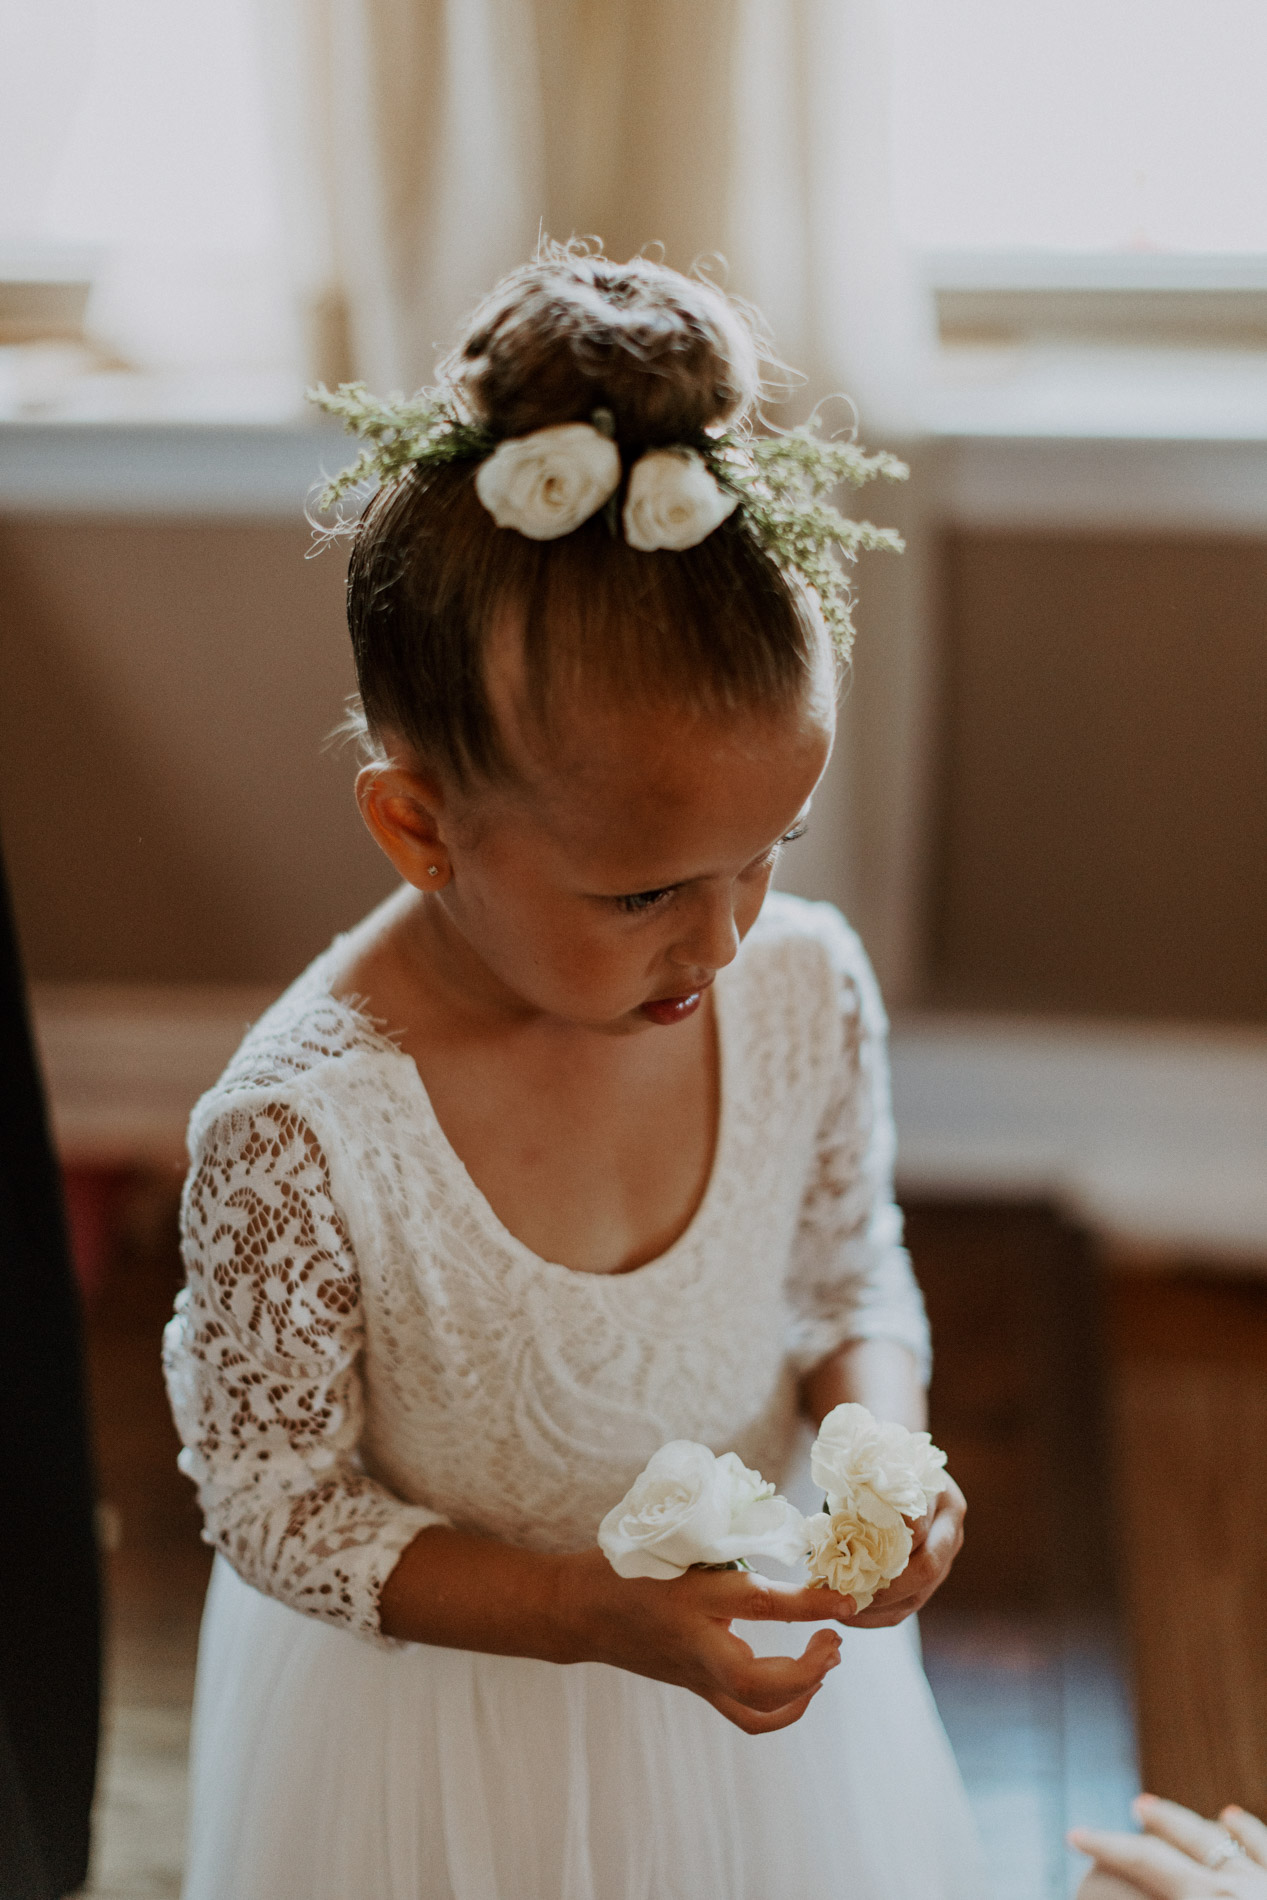 Adorable flower girl dressed up before wedding ceremony